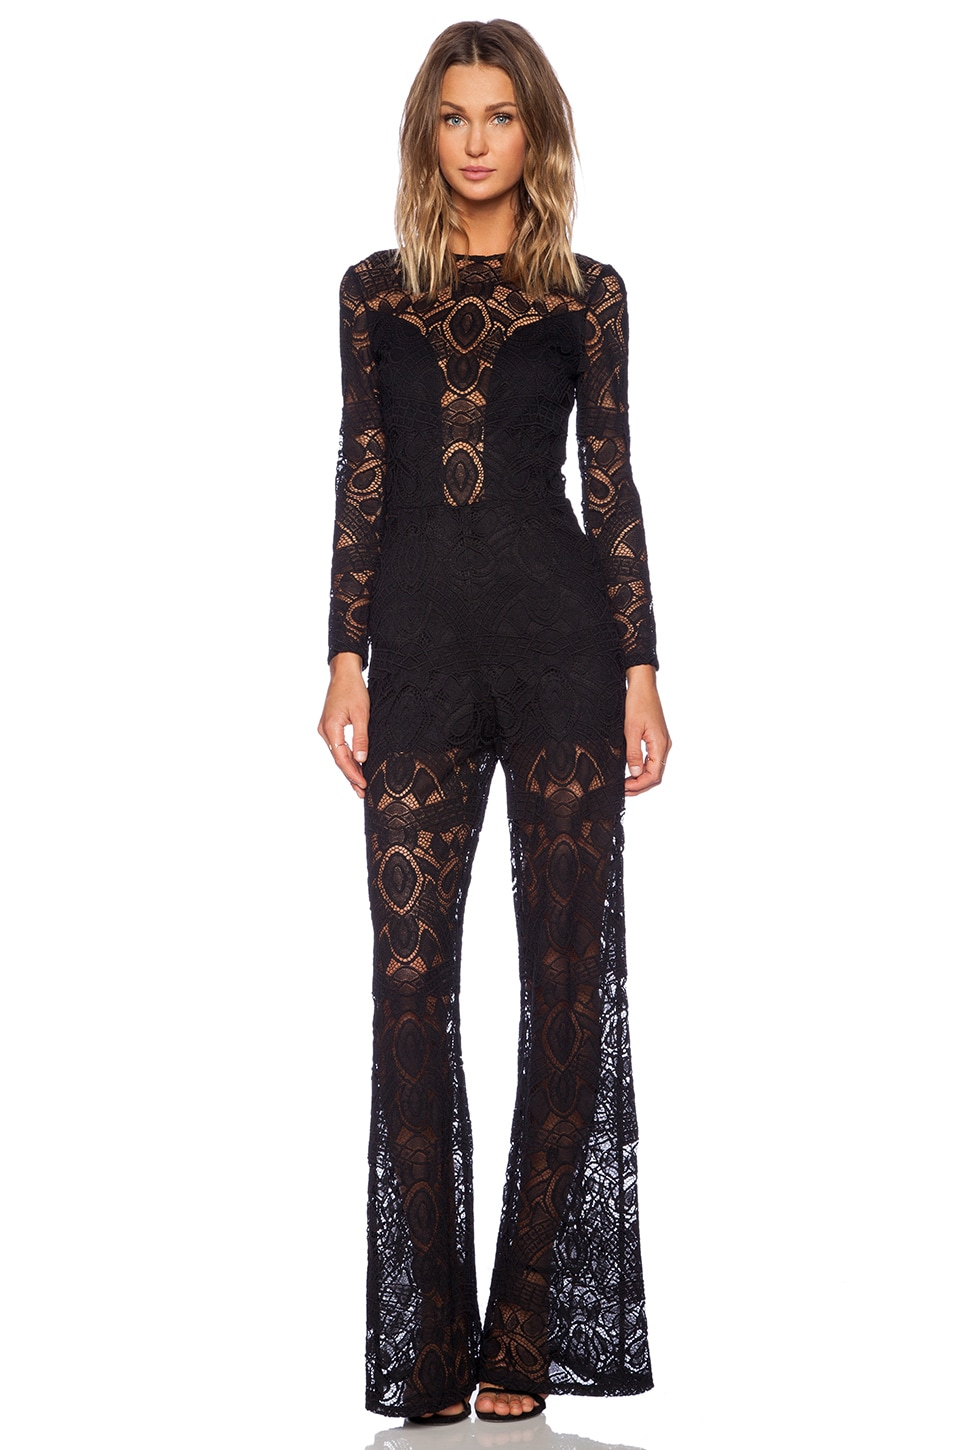 Alexis Asti Long Sleeve Jumpsuit in Black Lace